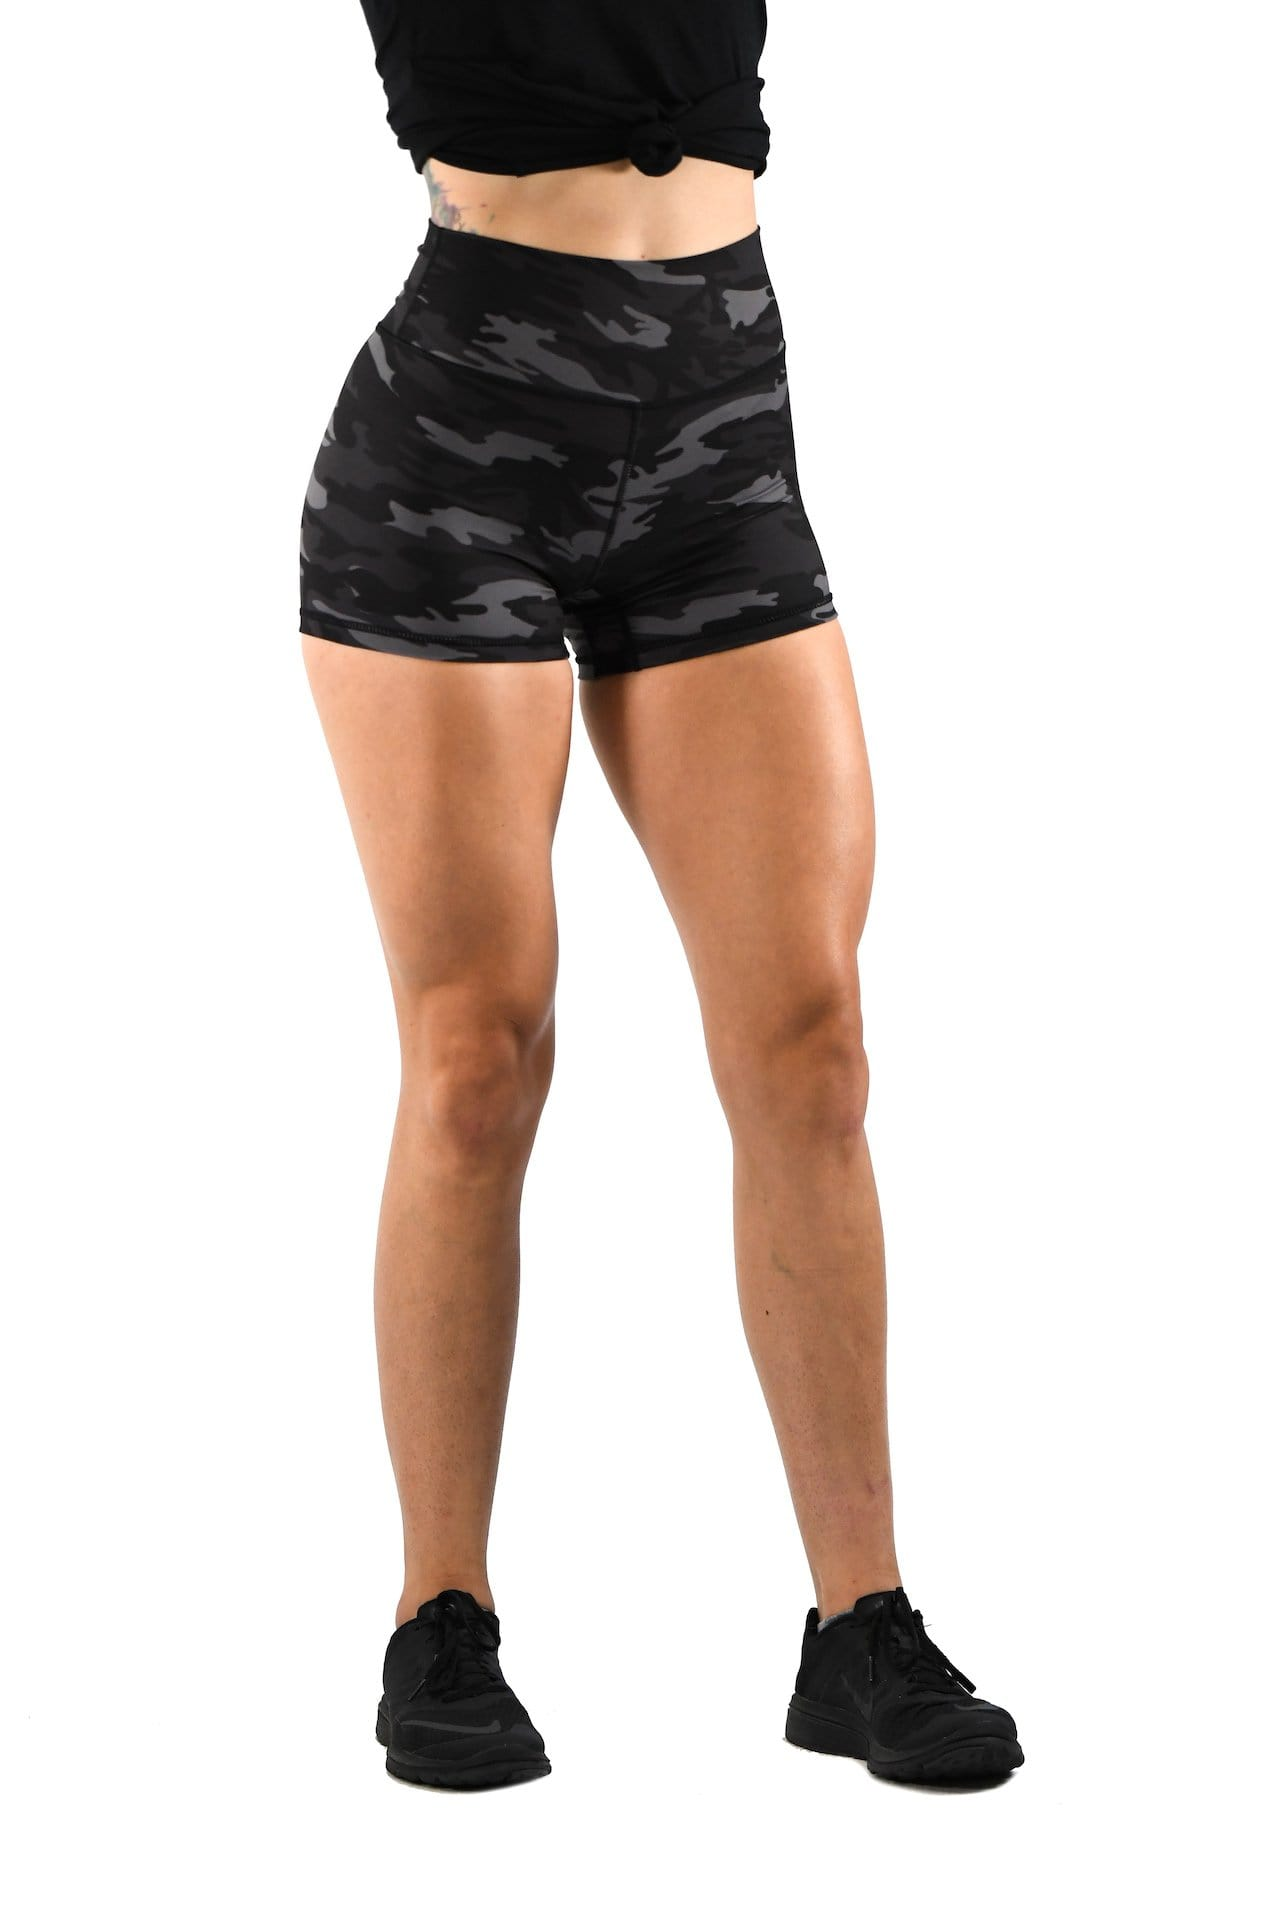 Effortless Scrunch Shorts- Black Camo